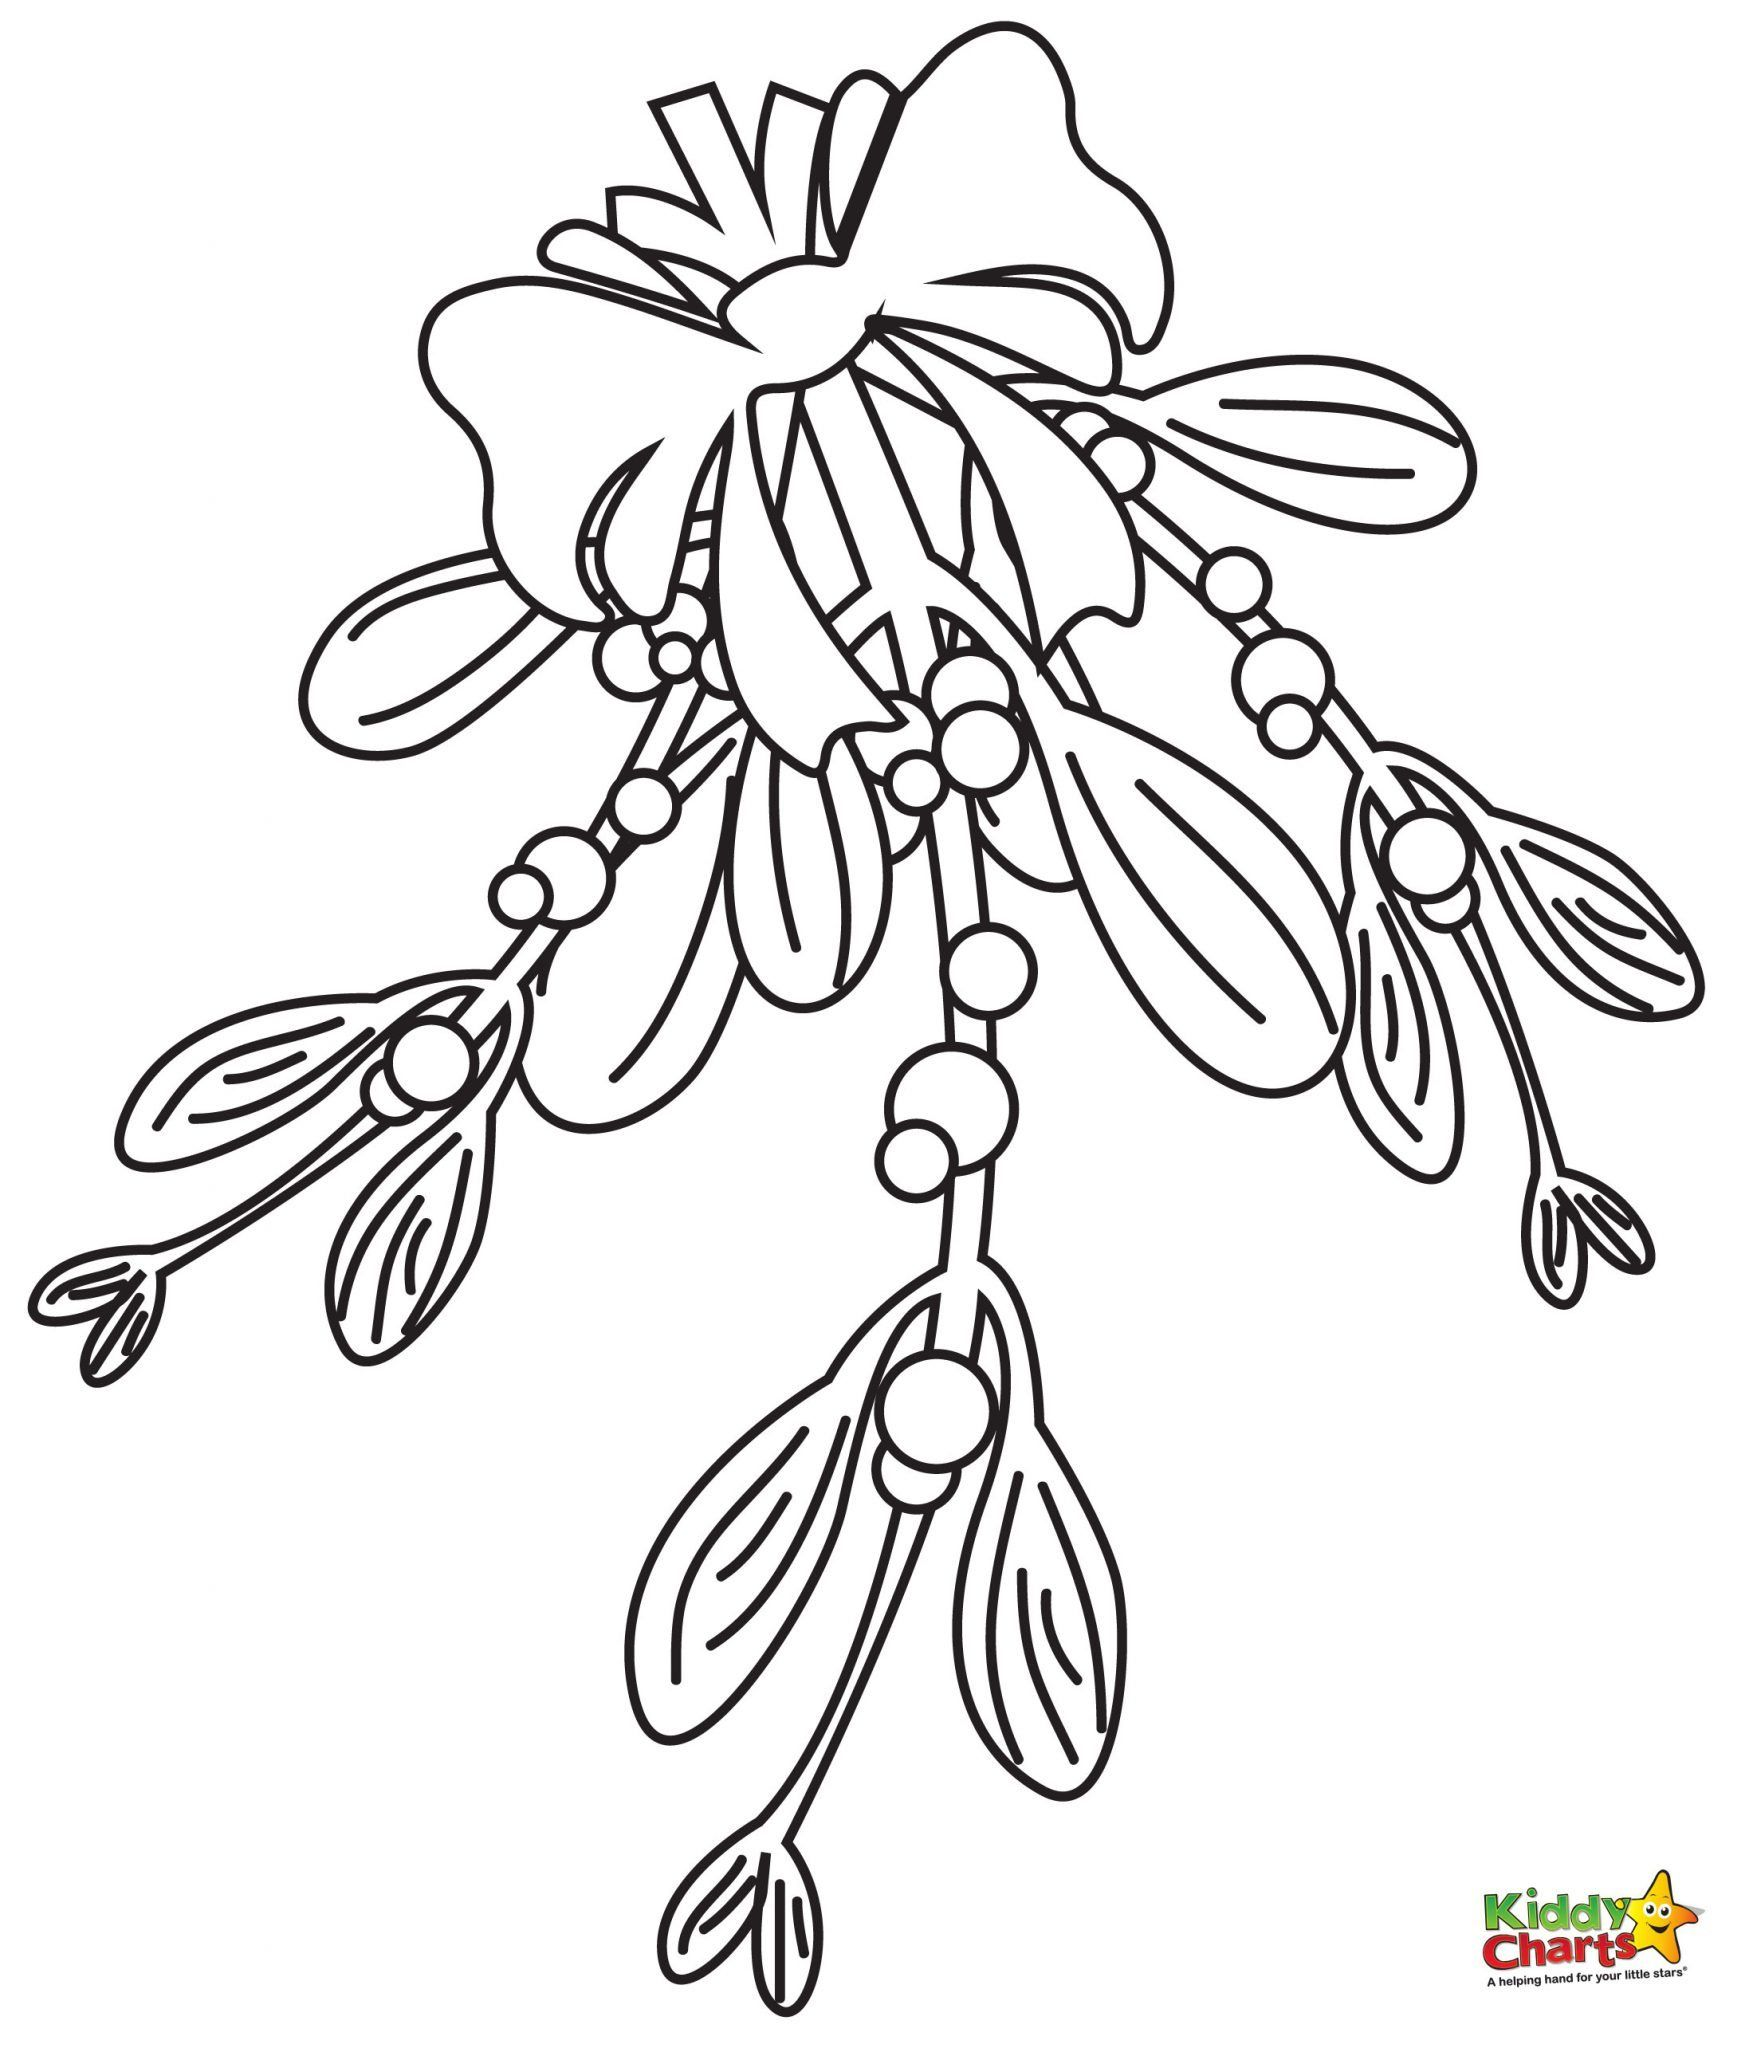 Colouring in reward charts - Mistletoe Coloring Pages